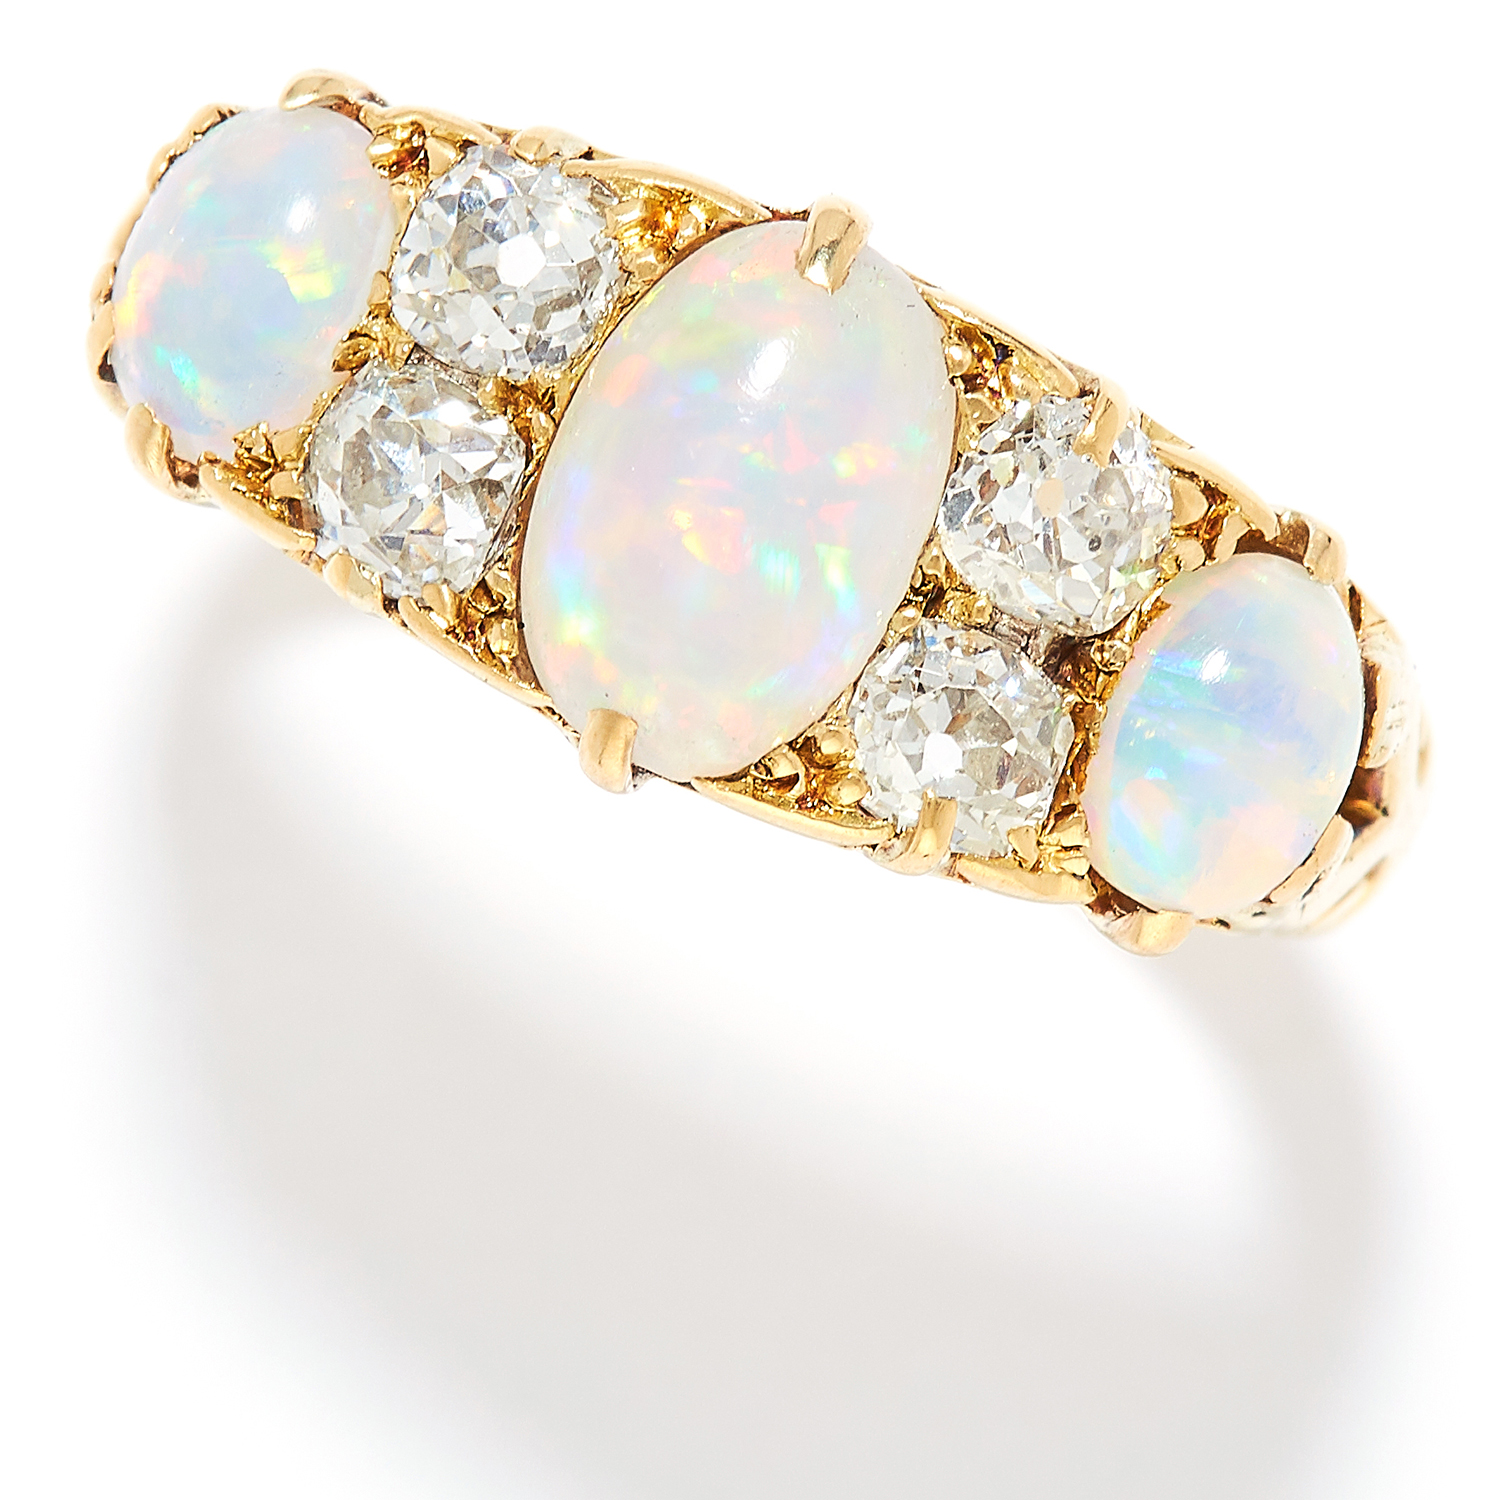 ANTIQUE OPAL AND DIAMOND RING, LATE 19TH CENTURY in high carat yellow gold, set with a trio of